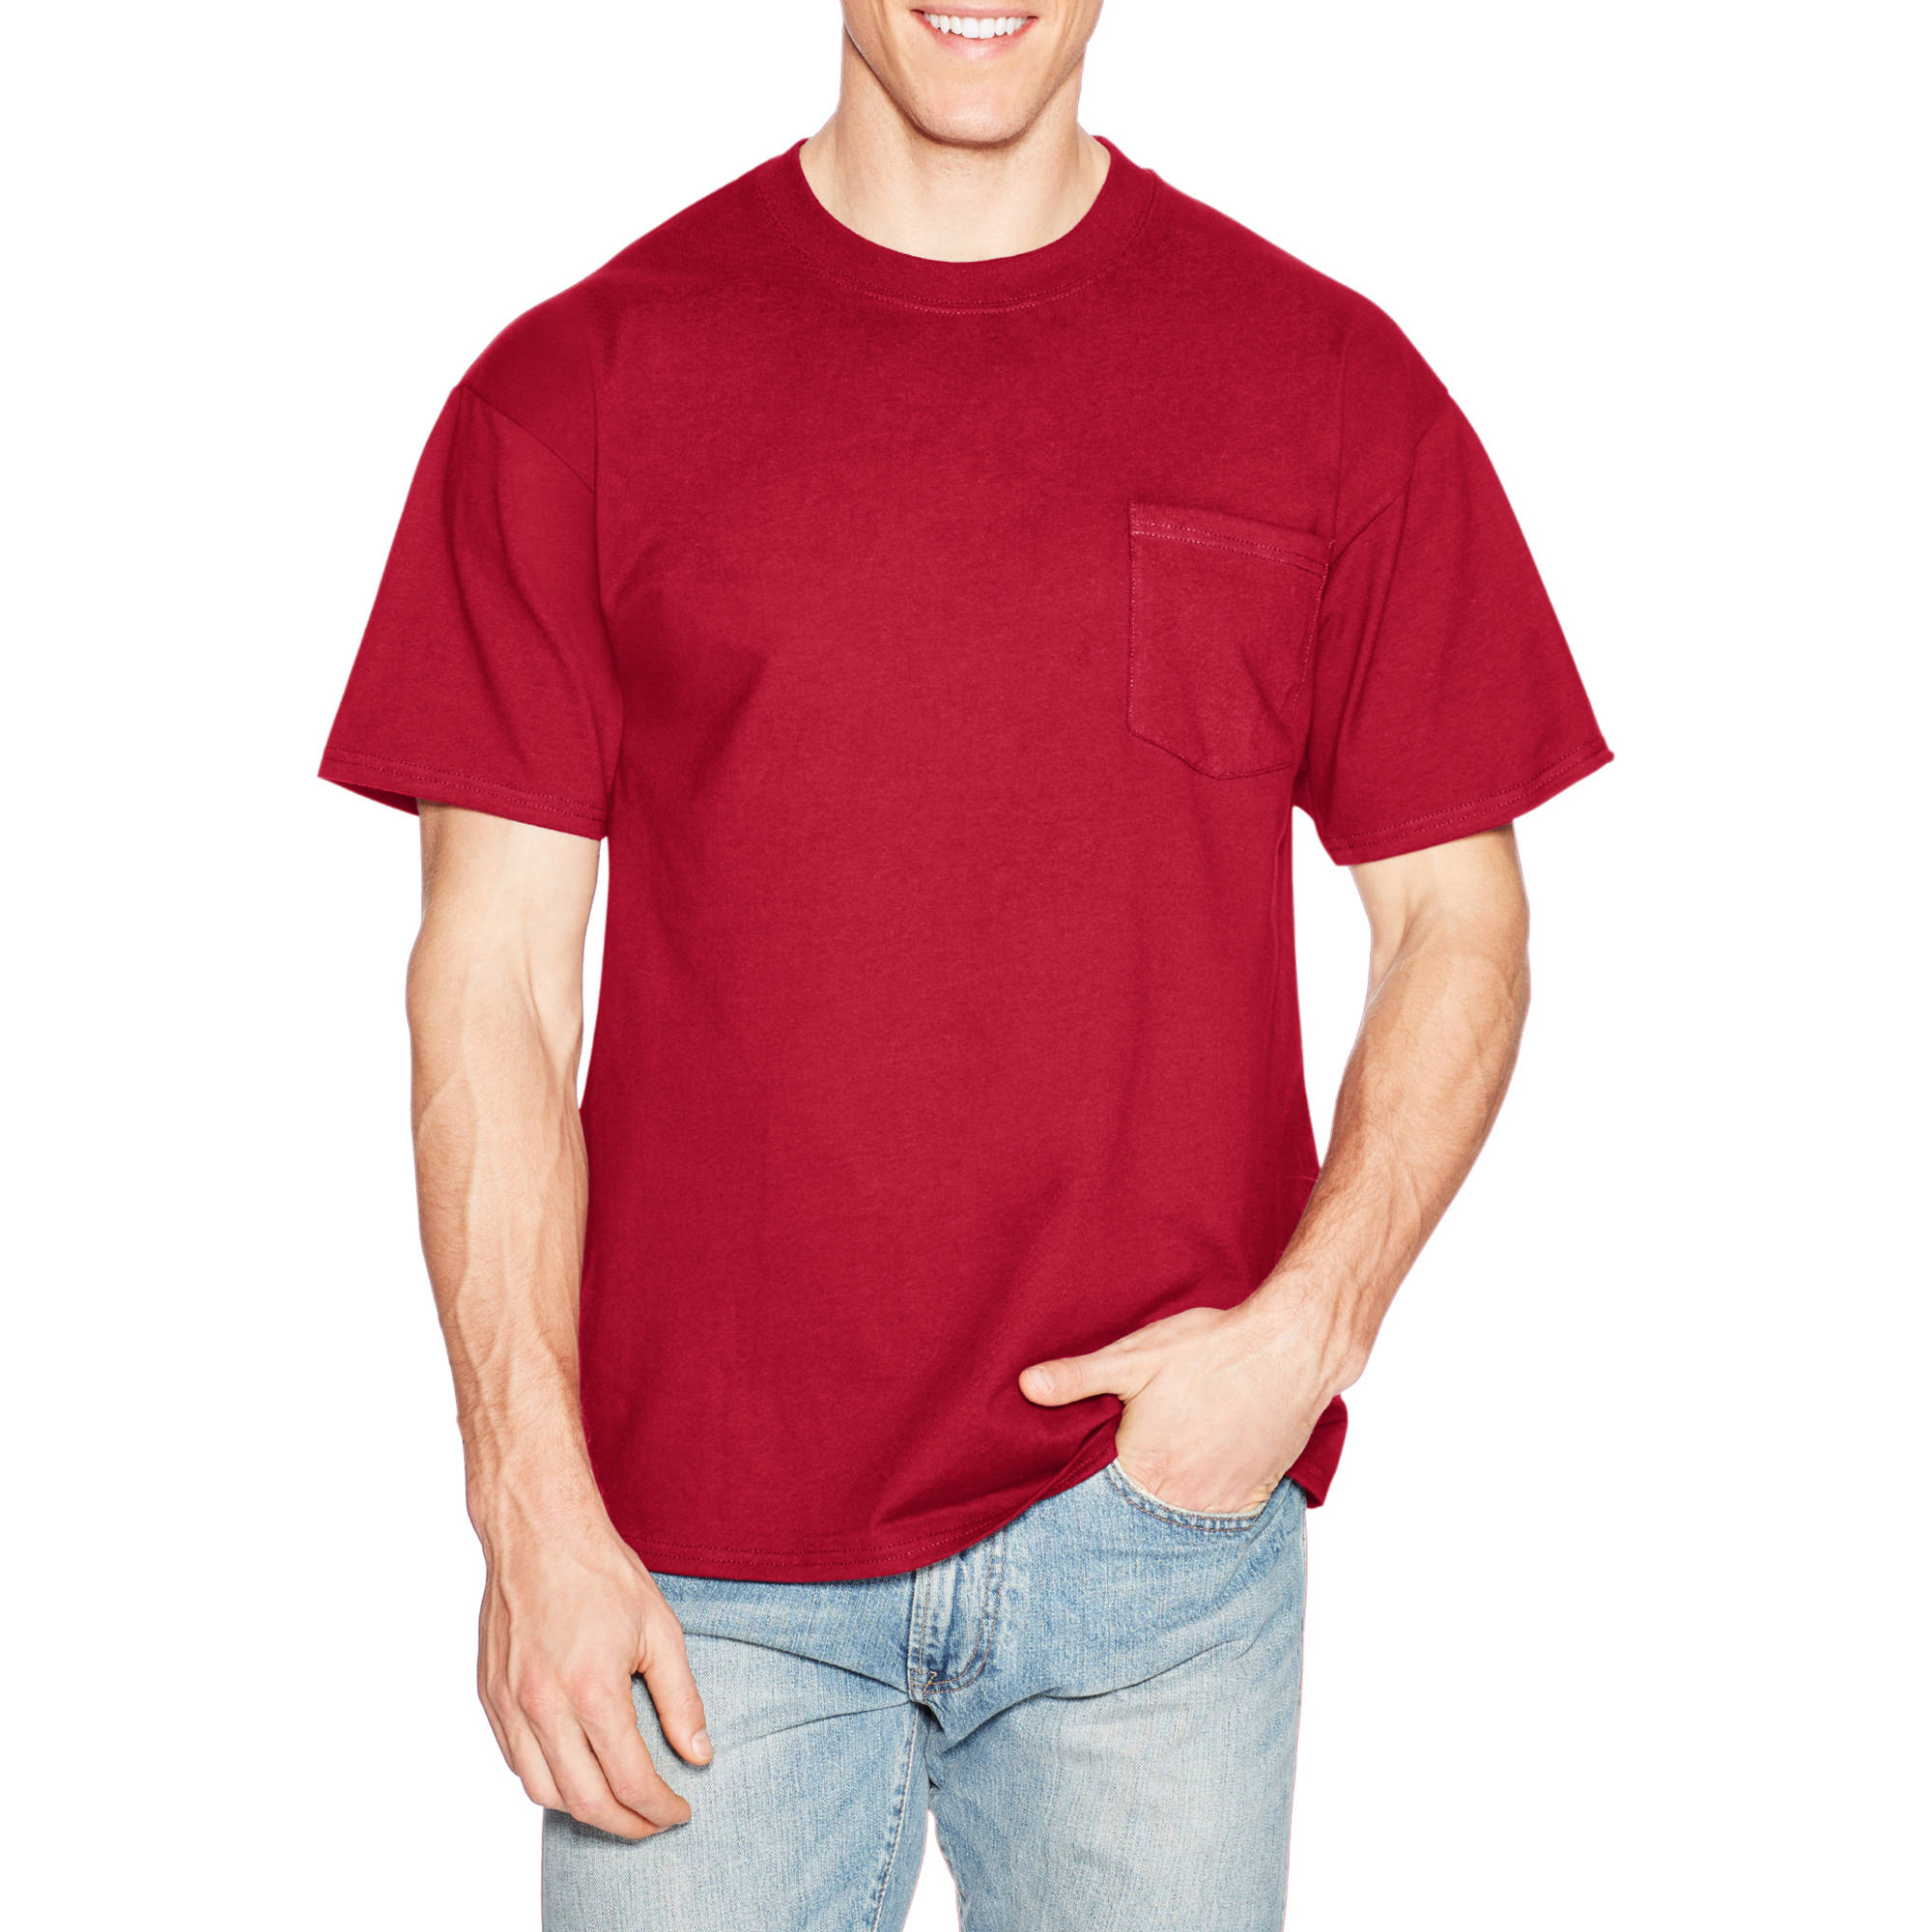 Hanes Mens Premium Beefy-T Cotton Short Sleeve T-Shirt with Pocket